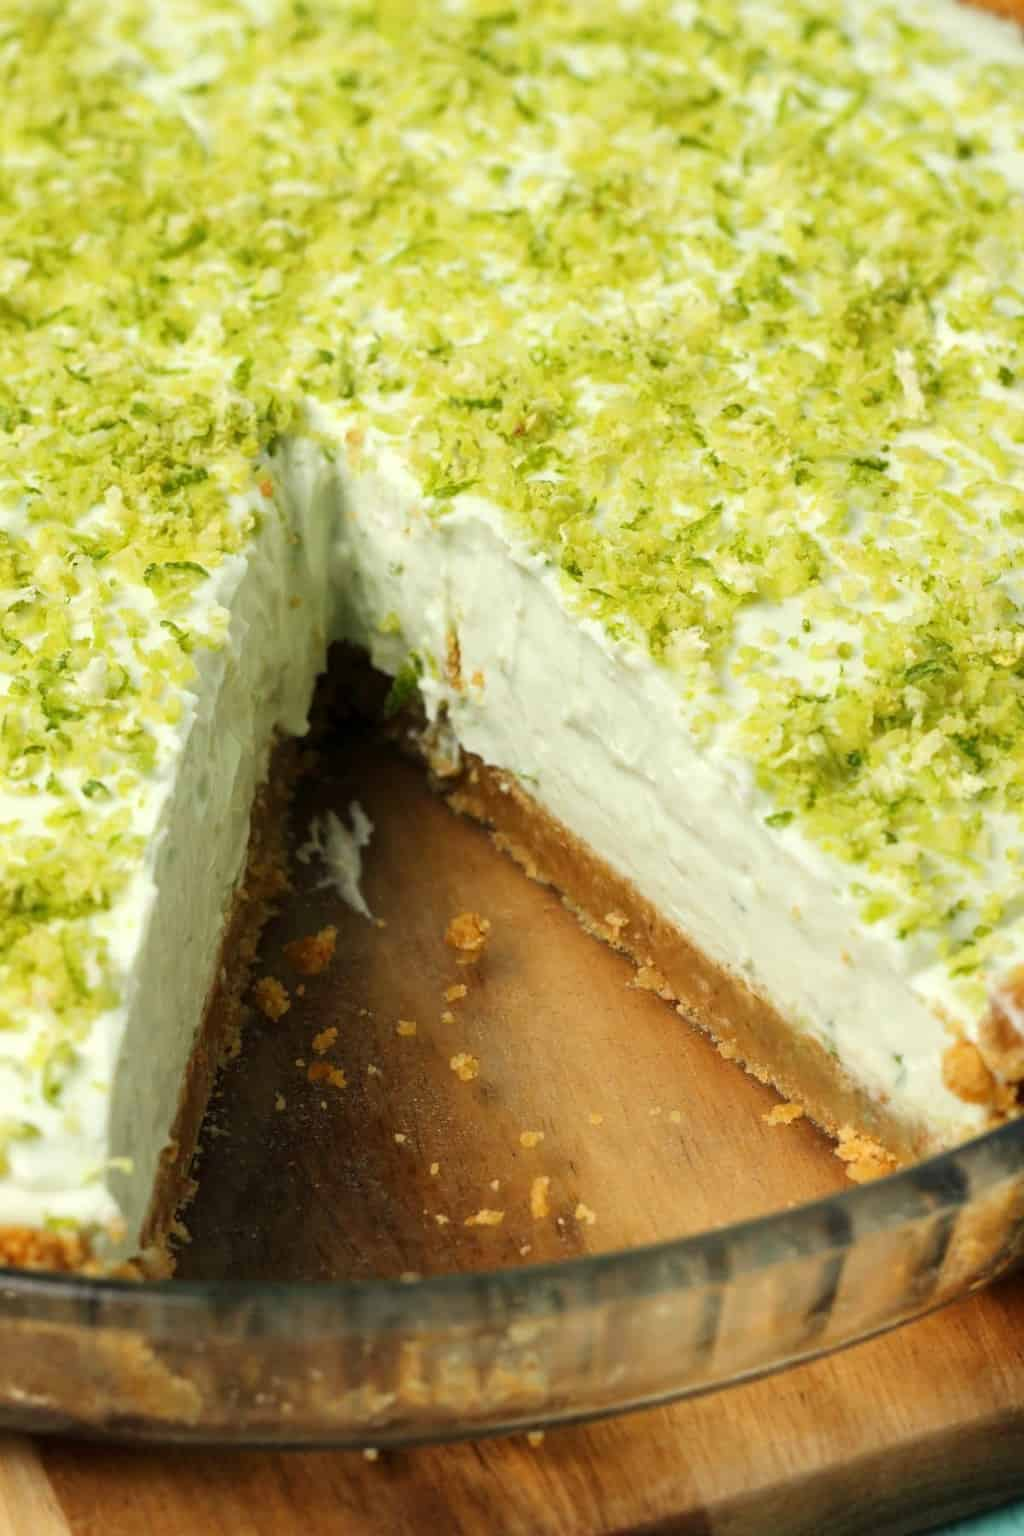 Vegan key lime pie topped with lime zest in a glass pie dish.